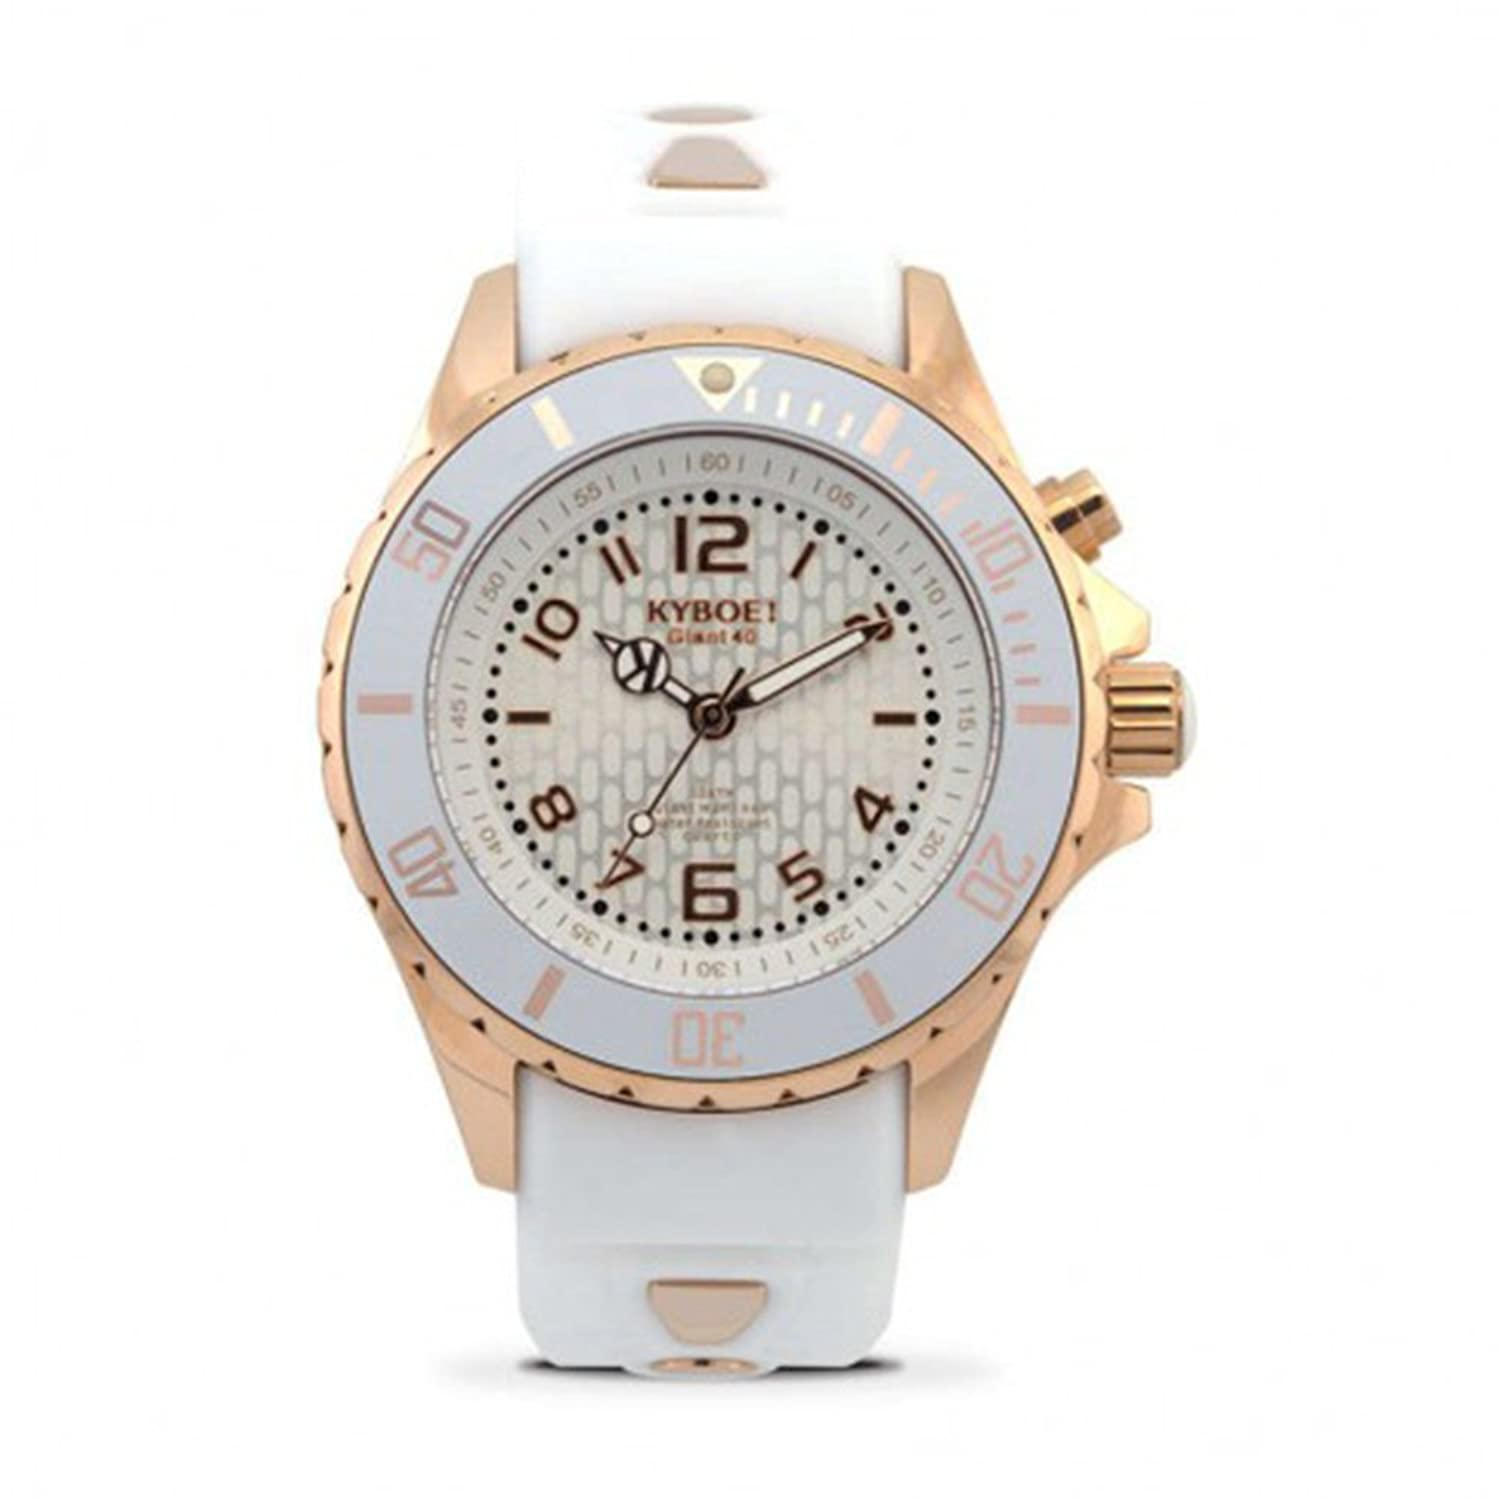 KYBOE! Rose Gold Series horloge RG-40-003